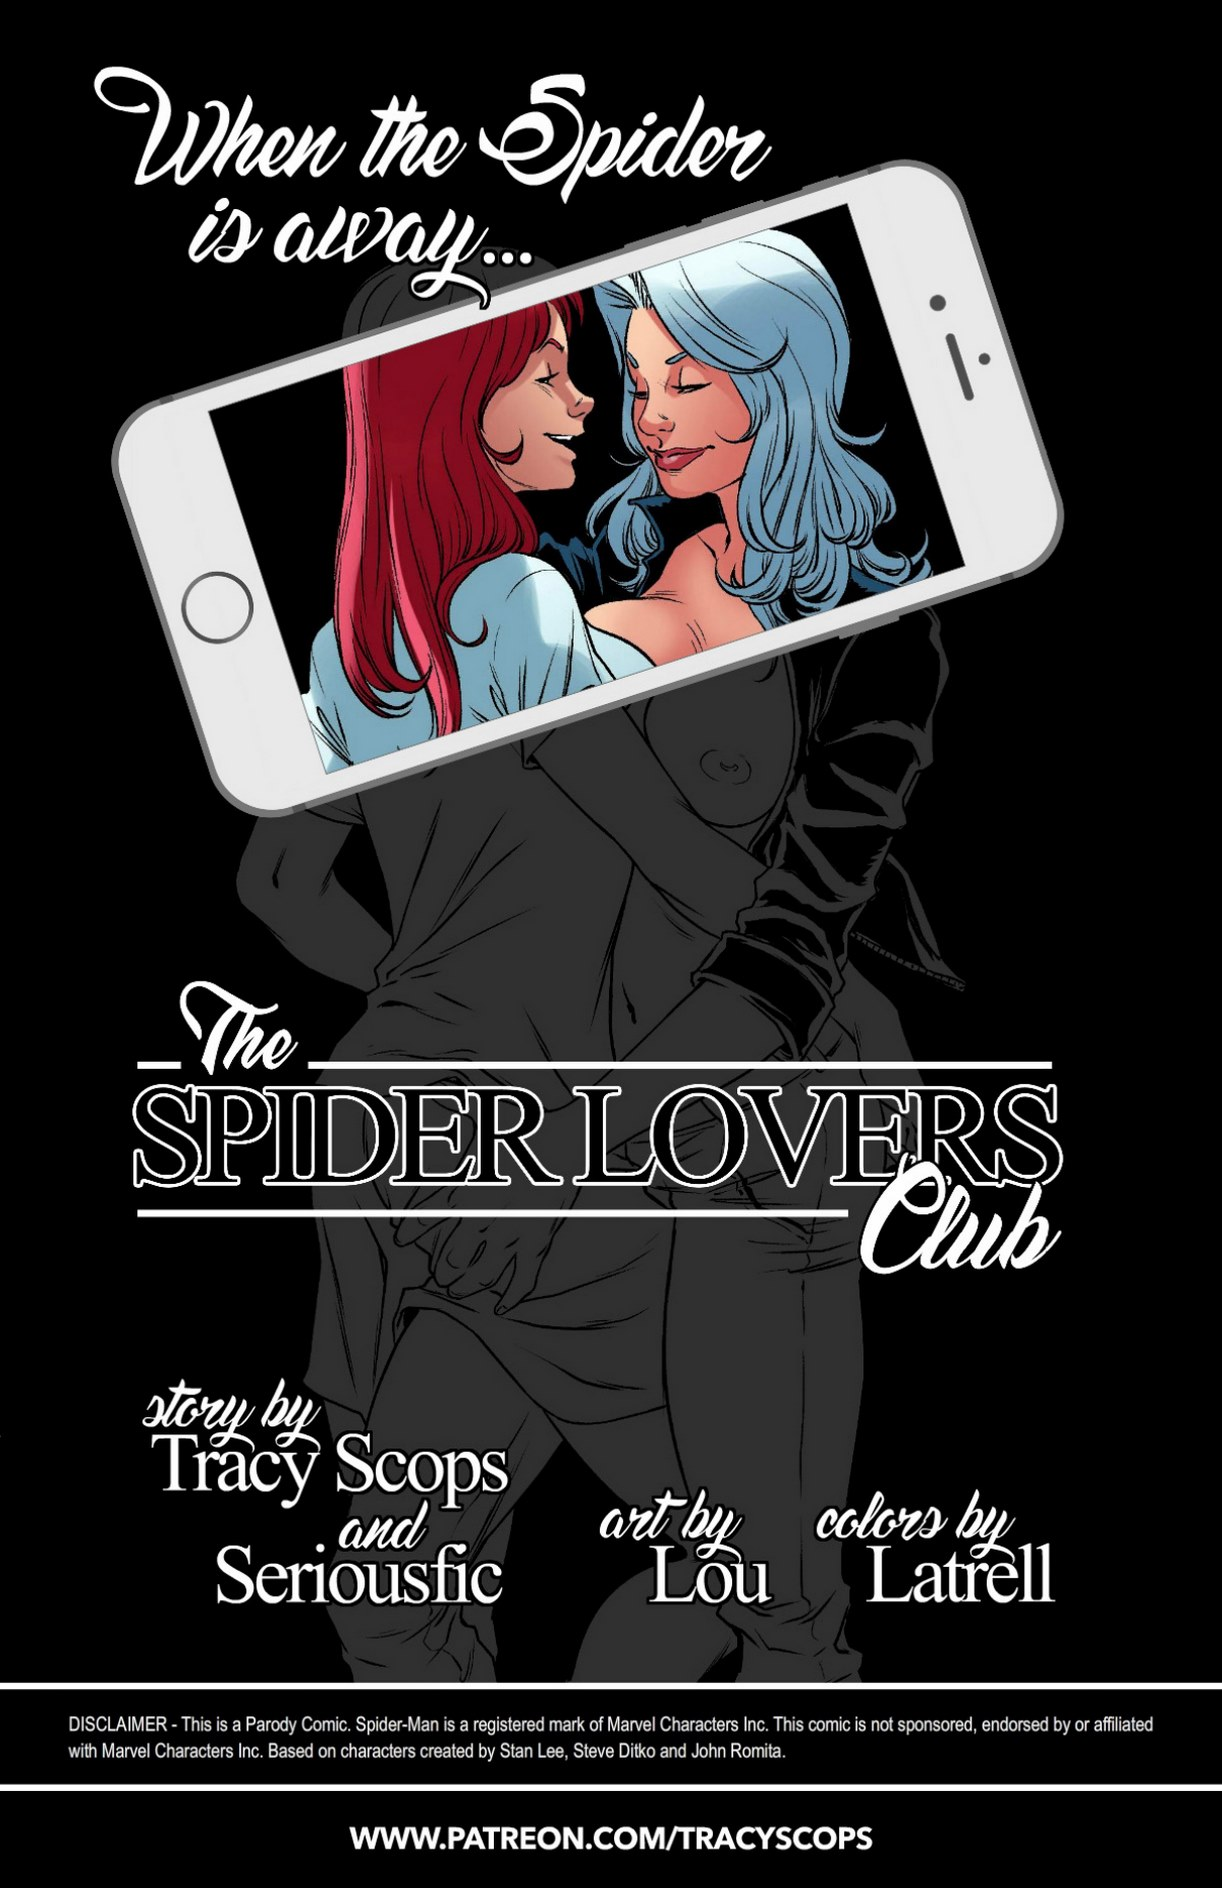 (TracyScops) SPIDER LOVERS CLUB(Seriousfic)